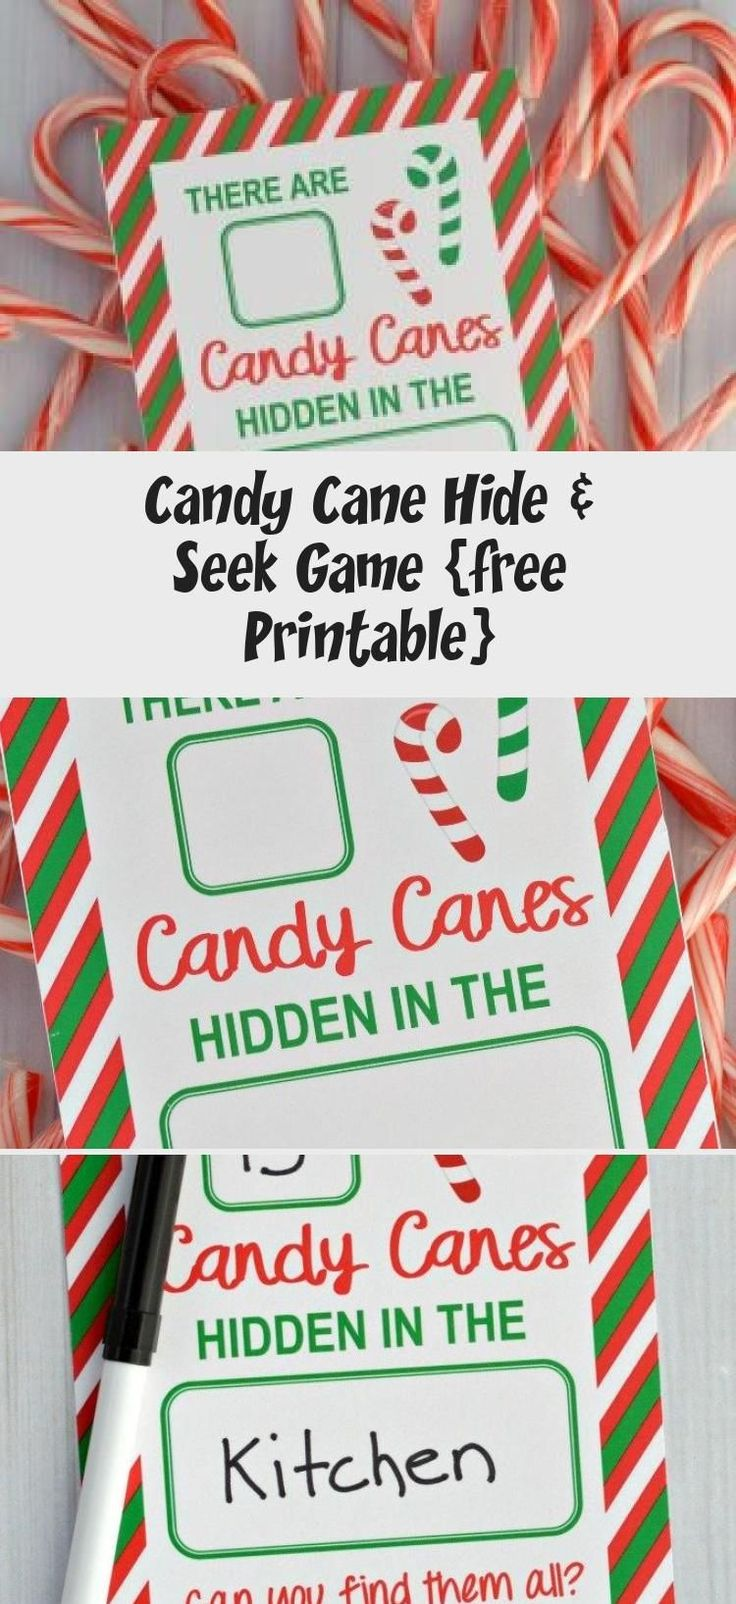 Candy Cane Hide & Seek Game free Printable HOLIDAY IDEAS